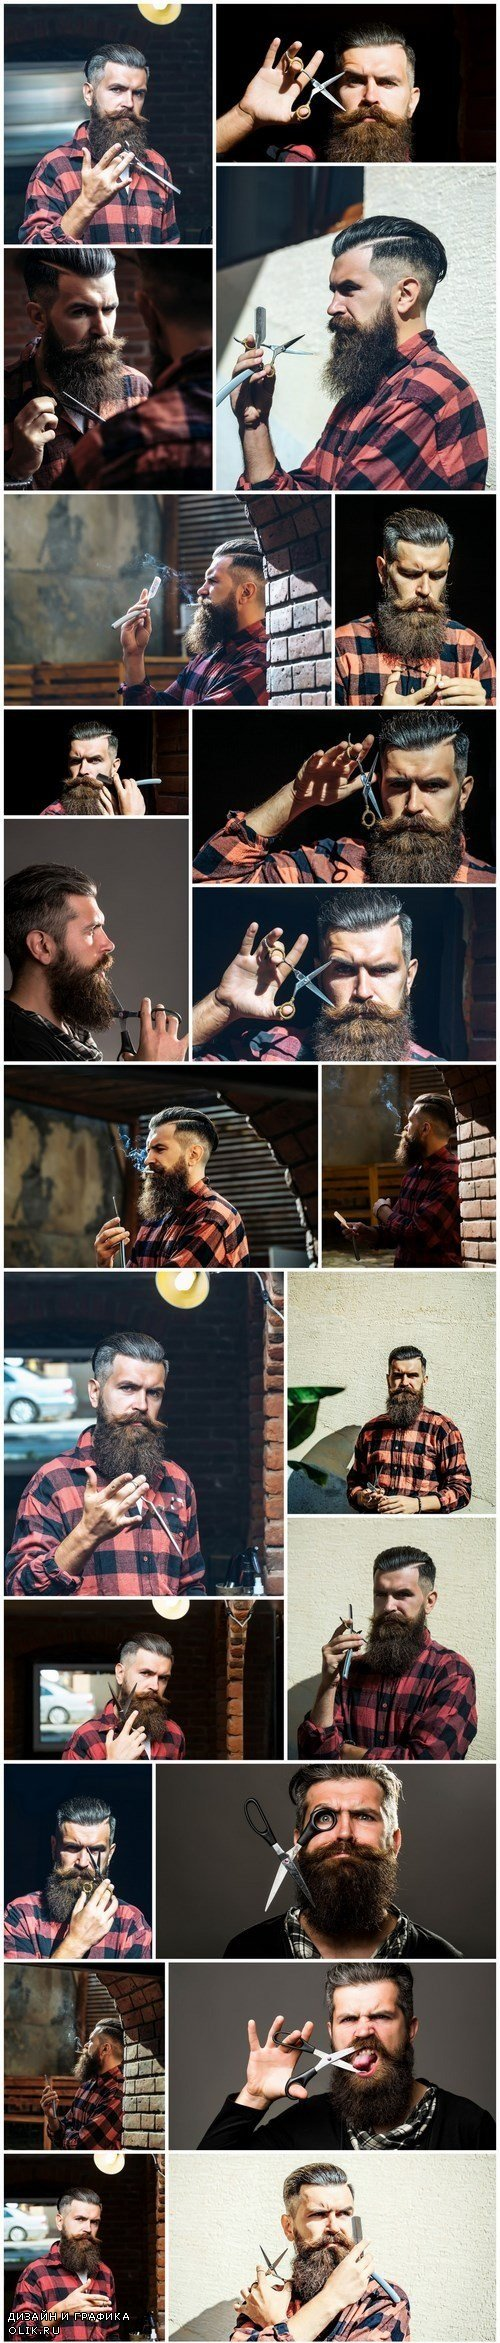 Man with Beard, Brutal Style, Hipster 4 - 25xUHQ JPEG Photo Stock